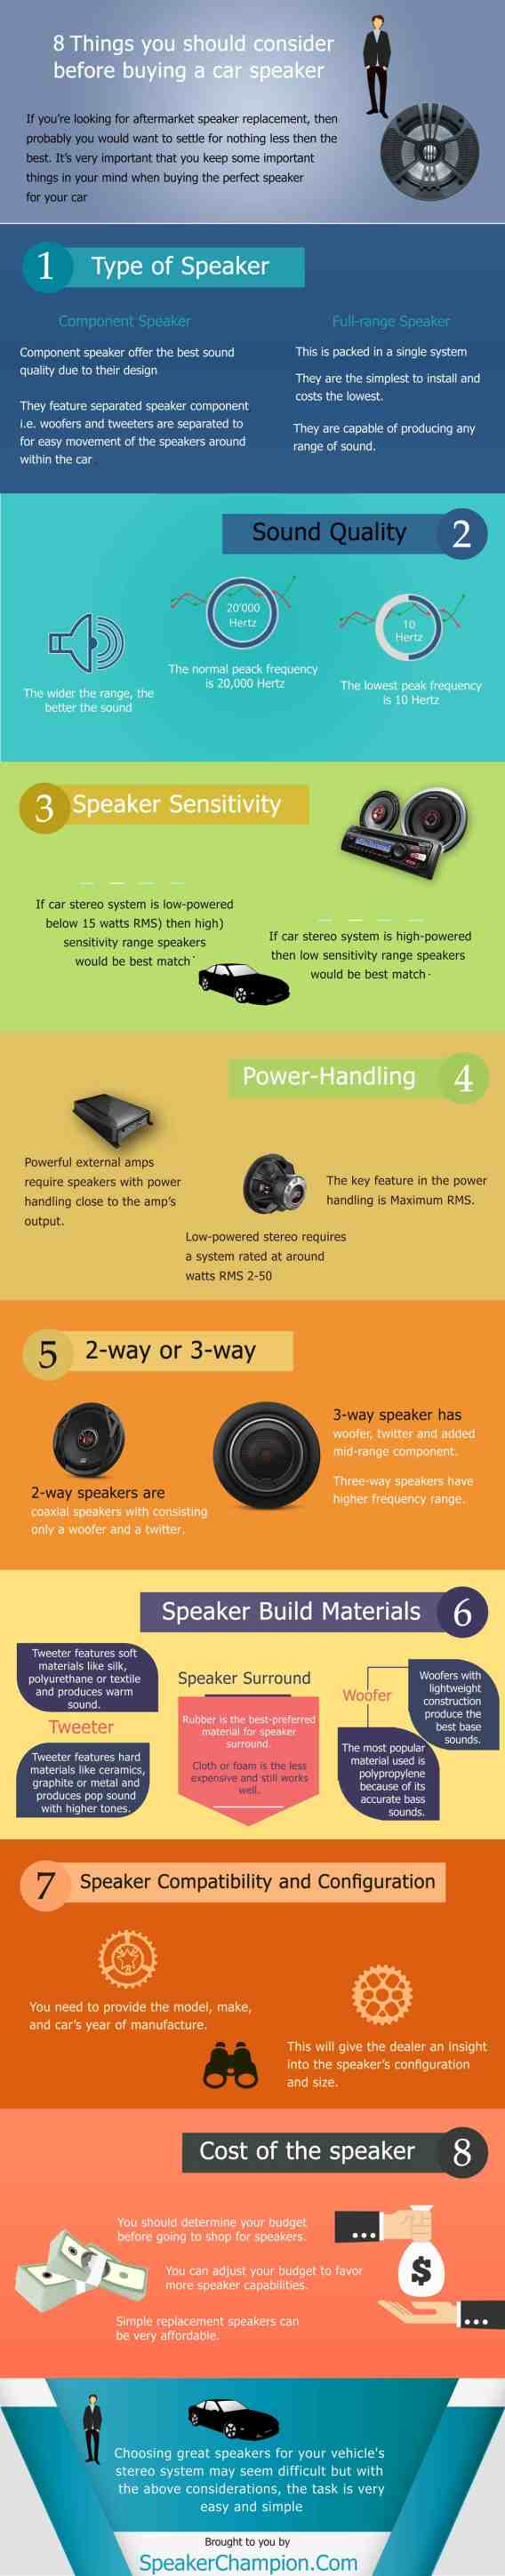 8 Things you should consider before buying a car speaker - with infographic